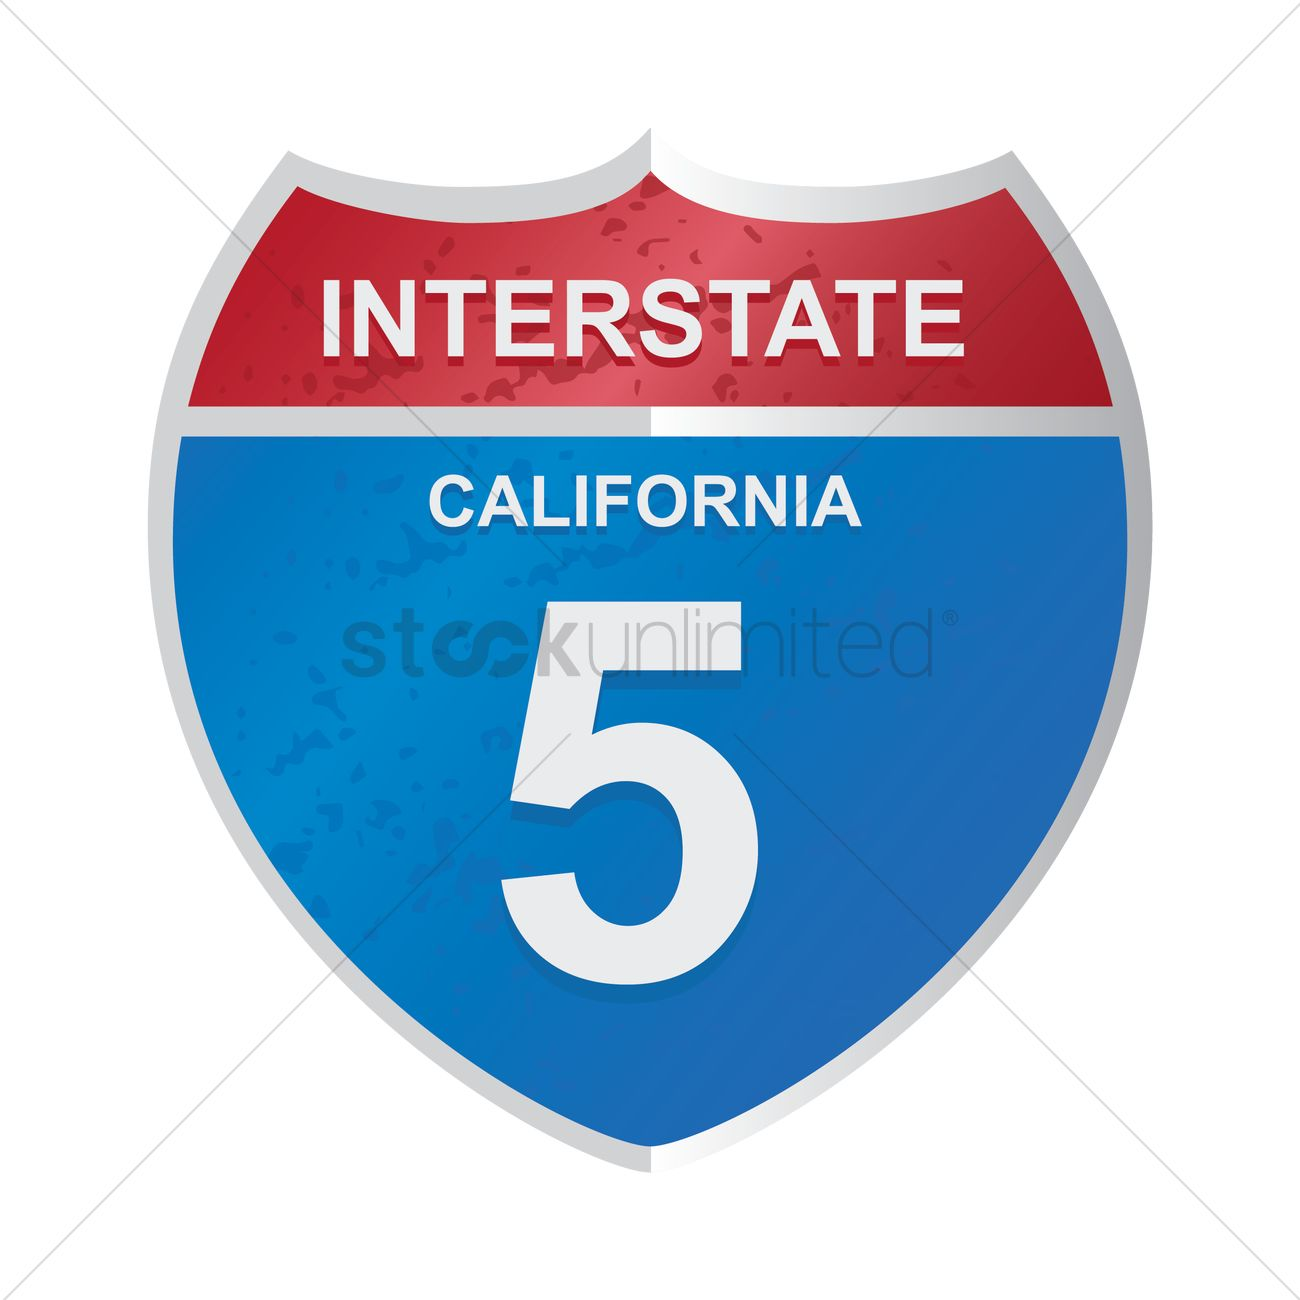 1300x1300 Interstate California 5 Sign Vector Image